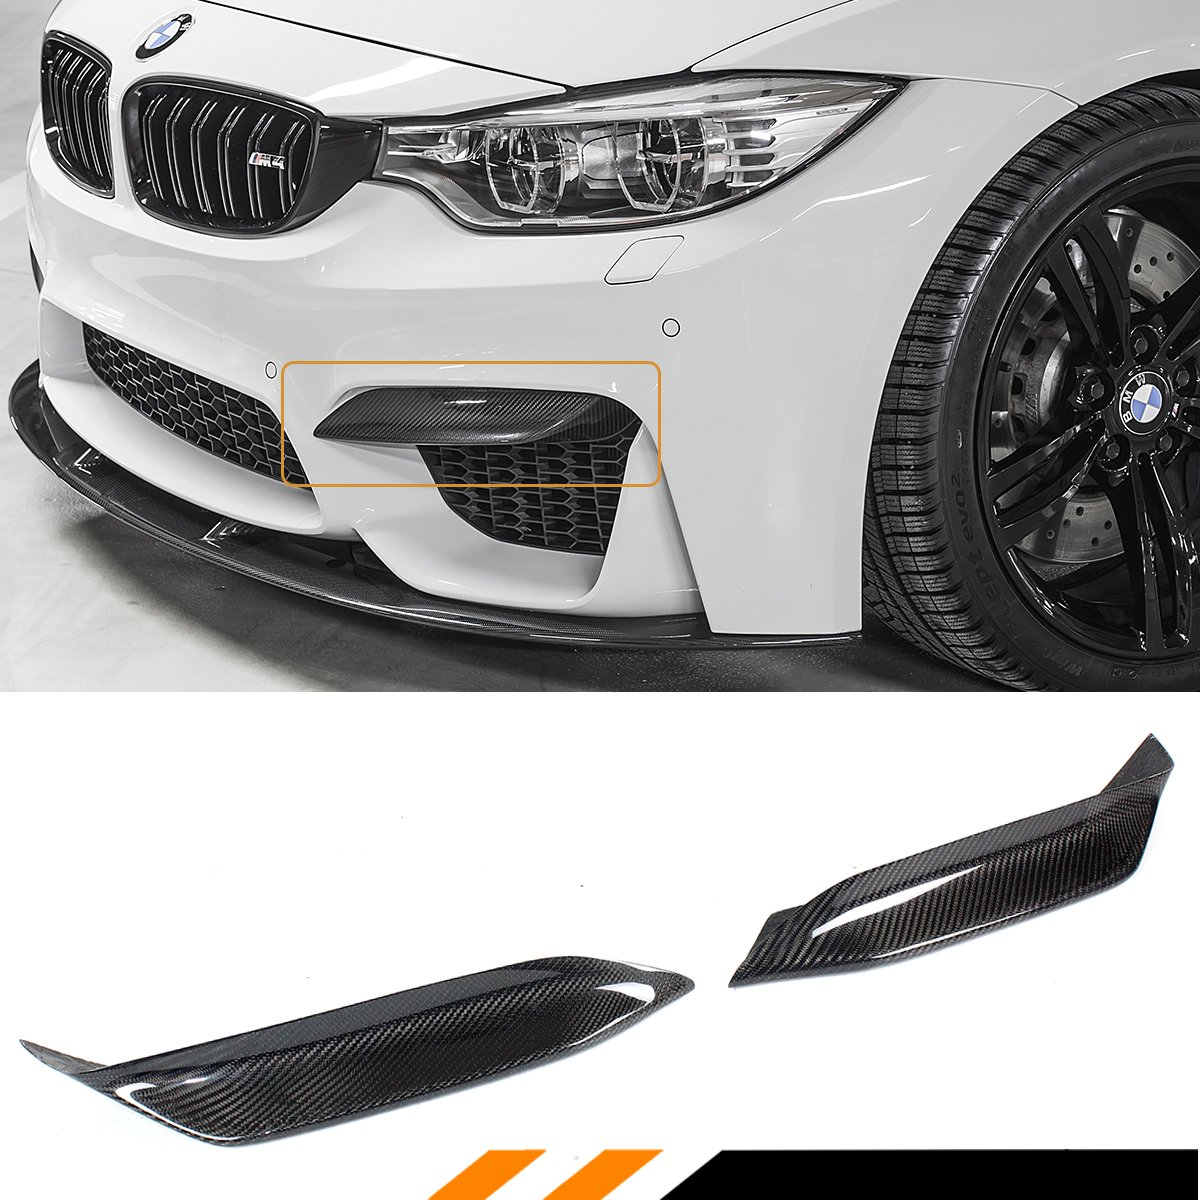 FOR 2015-2018 BMW F80 M3 F82 F83 M4 CARBON FIBER FRONT BUMPER AIR VENT EYELID COVER LIPS-PAIR Cuztom Tuning